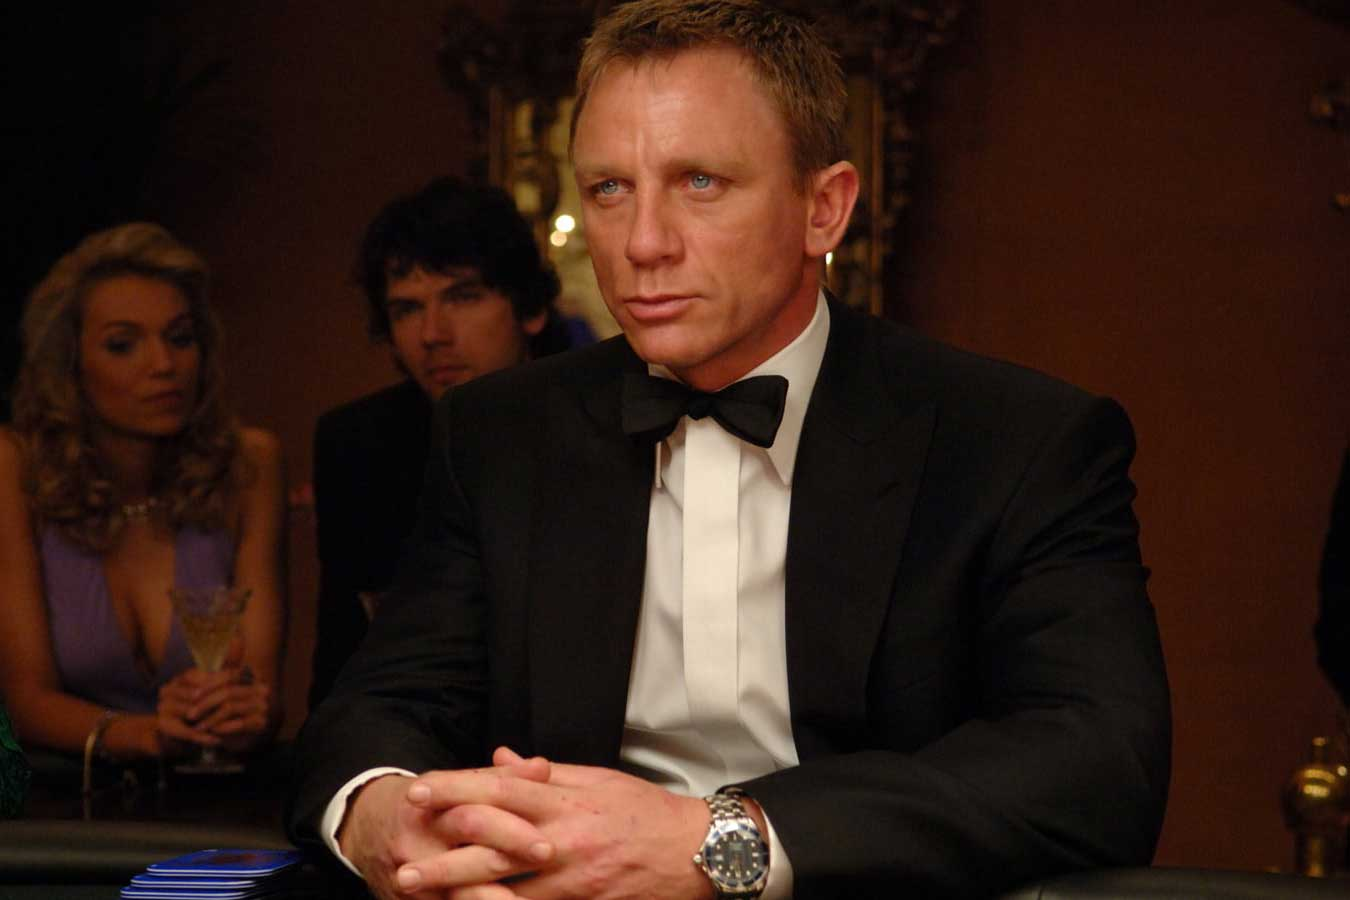 Daniel Craig as Bond in the 2006 film, Casino Royale (Image: omegawatches.com)